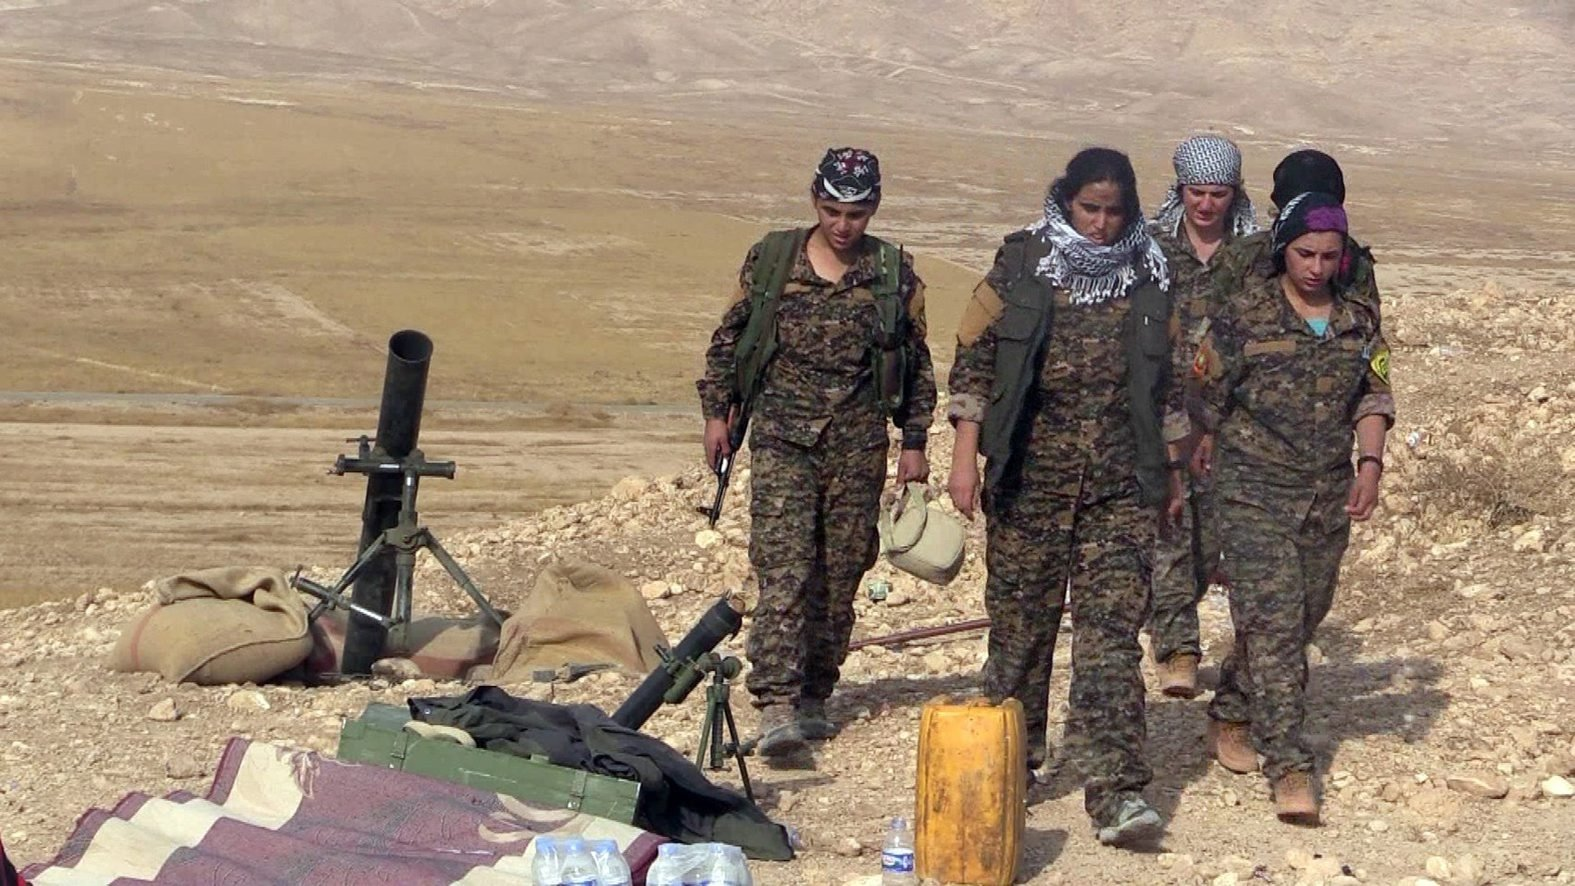 This undated photo shows a group of PKK terrorists in Sinjar, Iraq. (IHA File Photo)